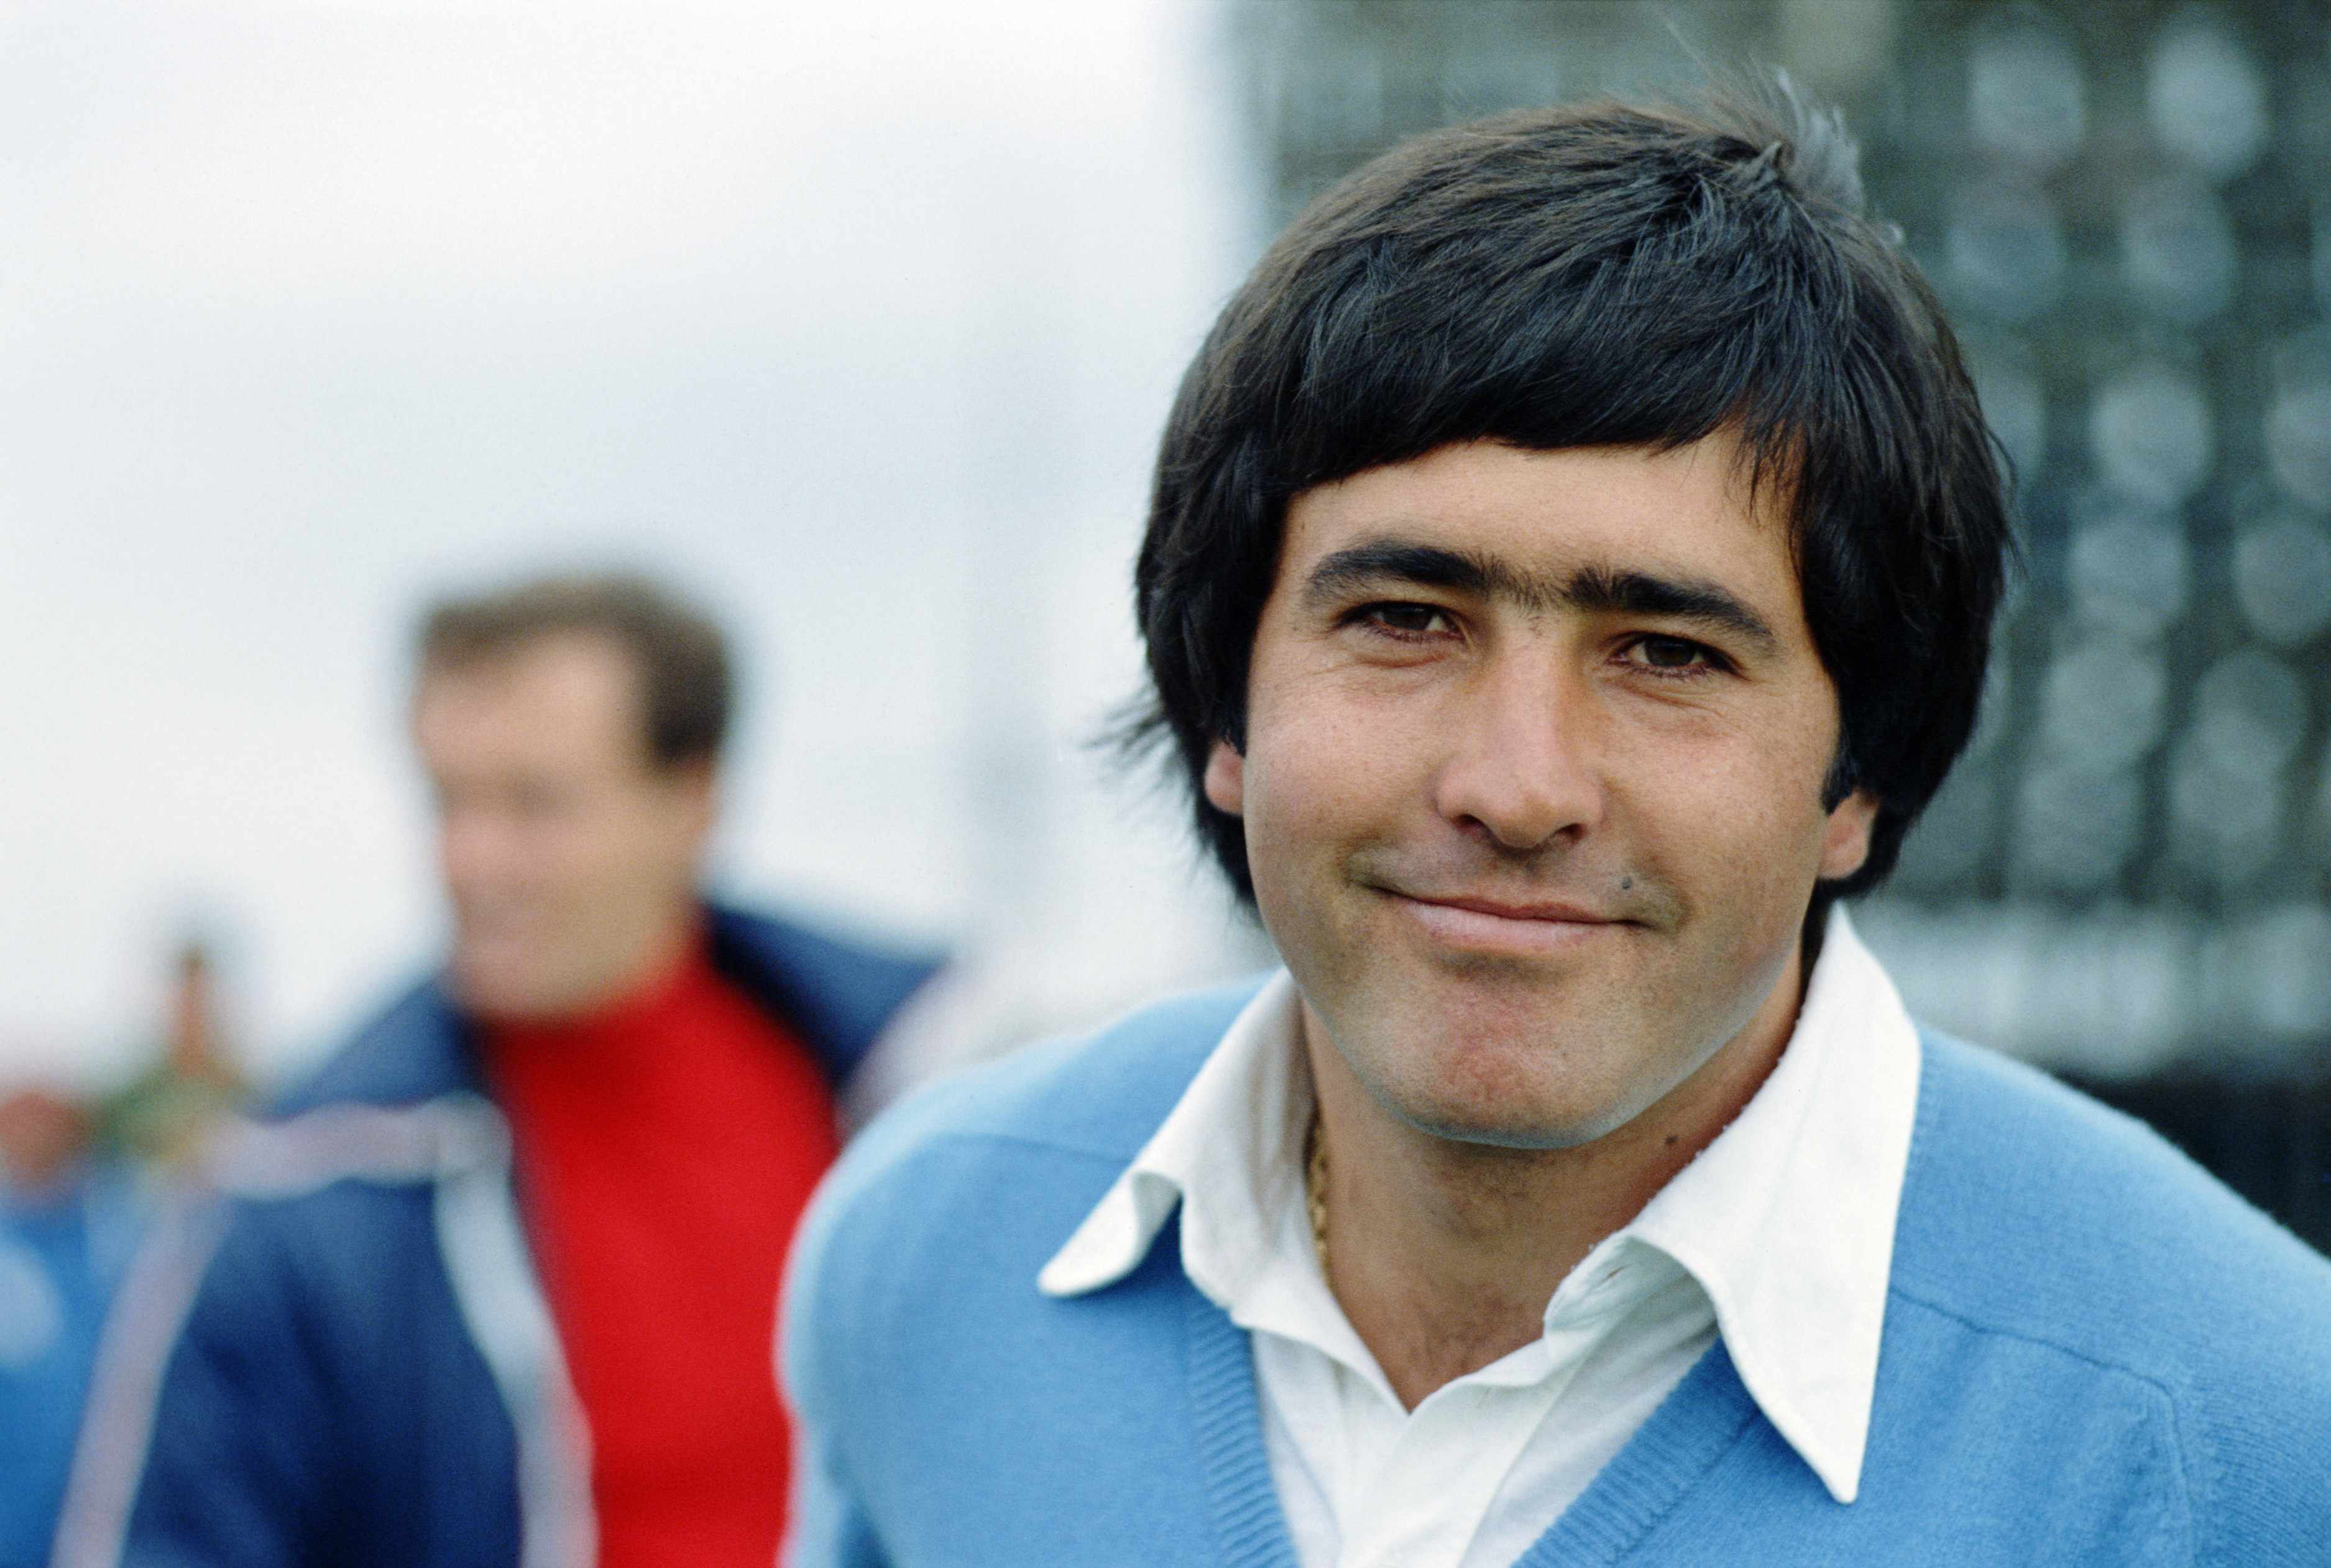 Seve Ballesteros. (Photo by Brian Morgan/Getty Images)